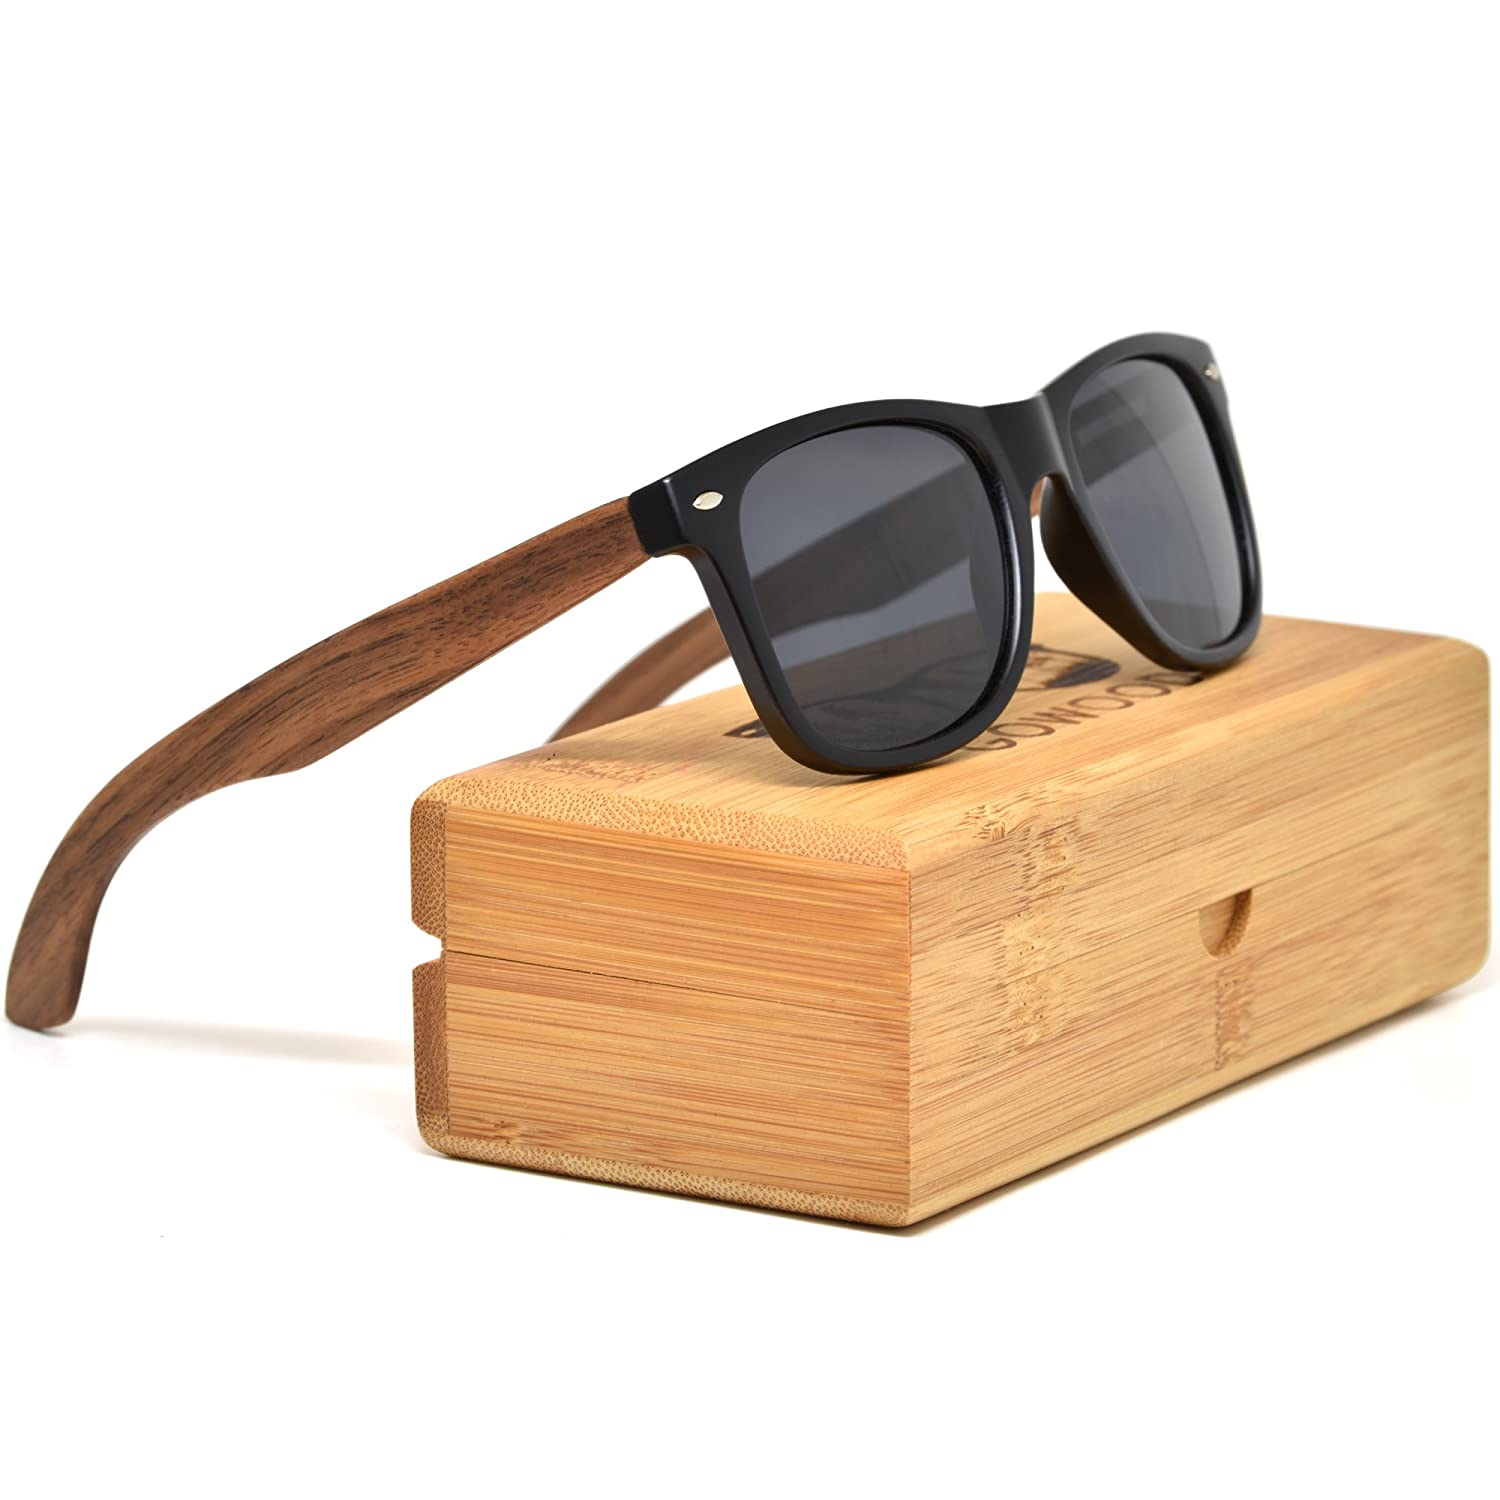 d94902eba Amazon.com: Walnut Wood Sunglasses For Men & Women with Polarized Lenses  with Wood Box GOWOOD: Shoes